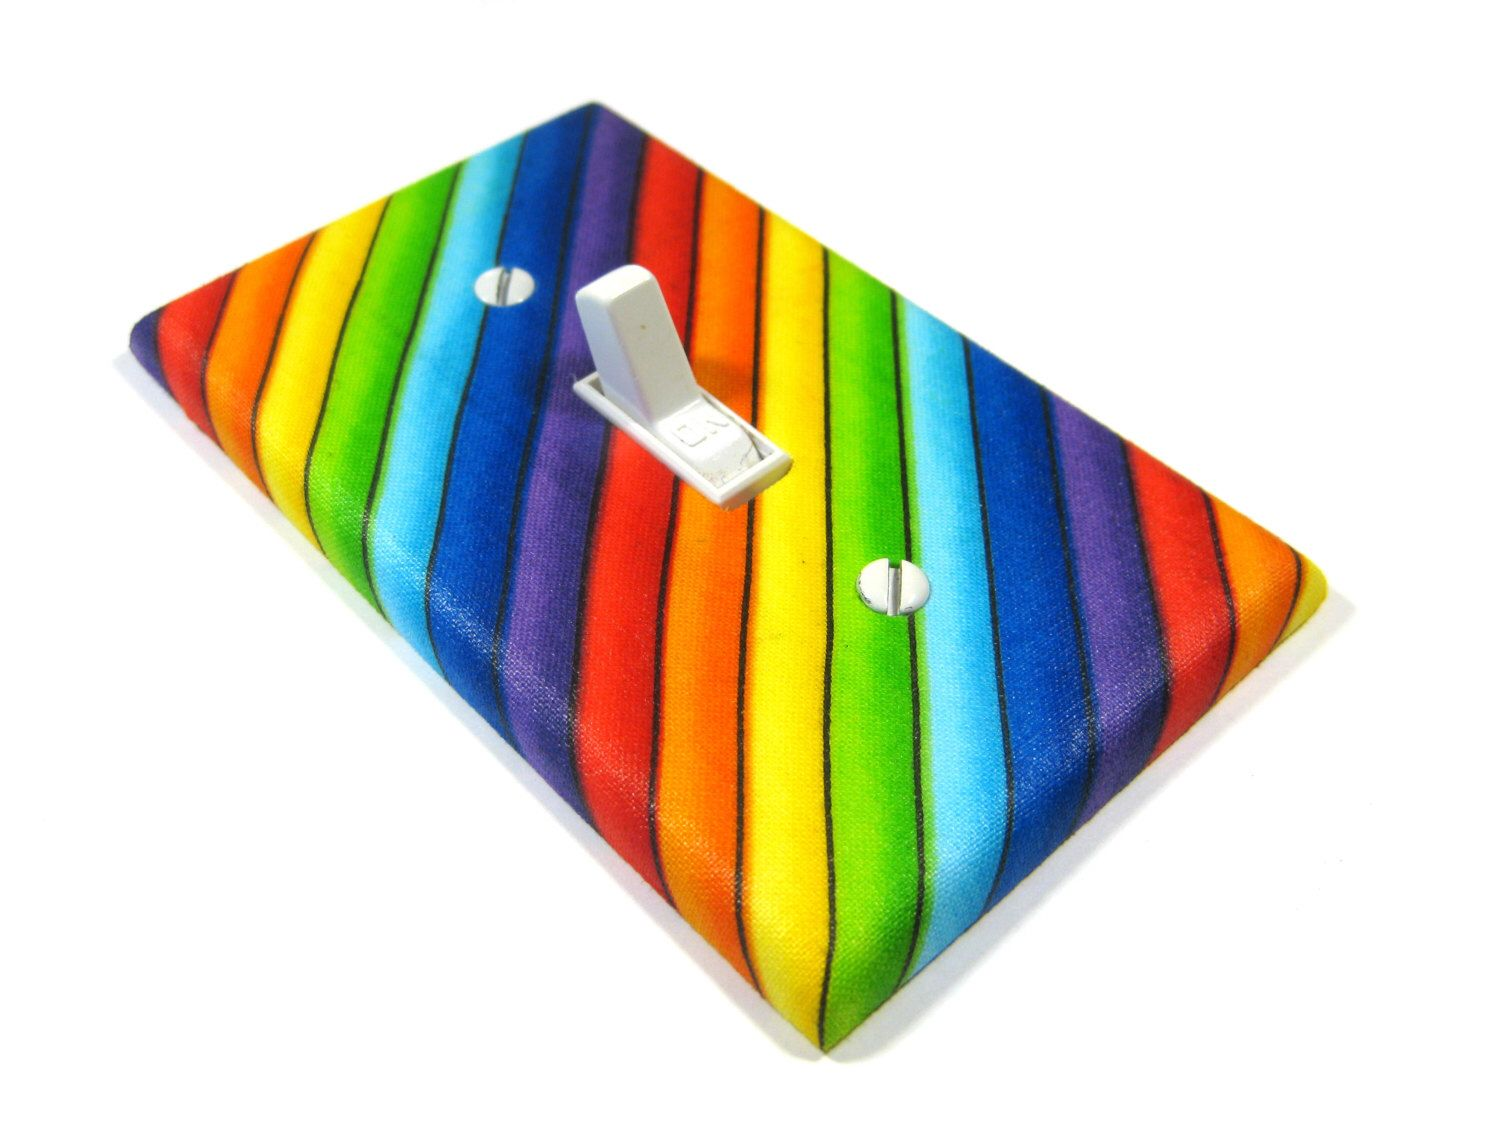 Diagonal Rainbow Stripes Light Switch Cover Rainbow Decor Gay Pride  Decoration Bright Home Decor 1214 By